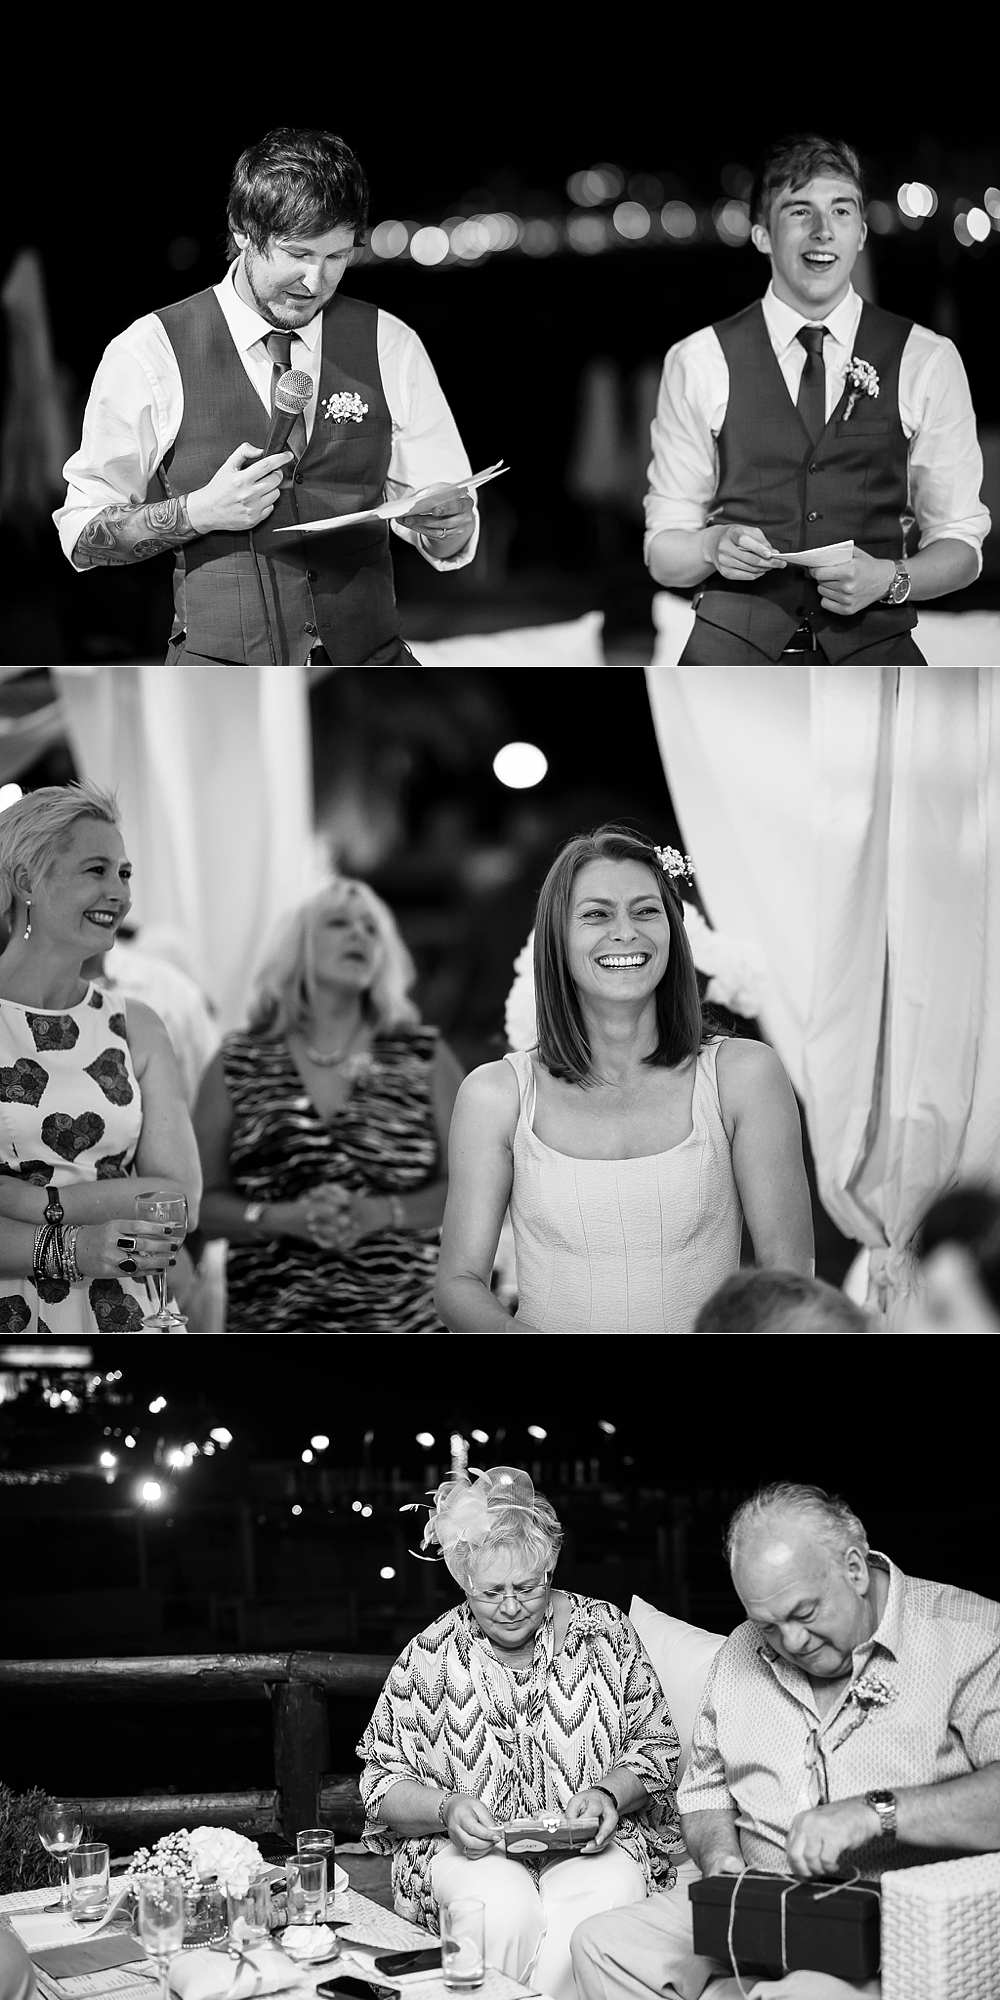 Wedding at the Westin - Wedding Photography Malta - Shane P. Watts Photography